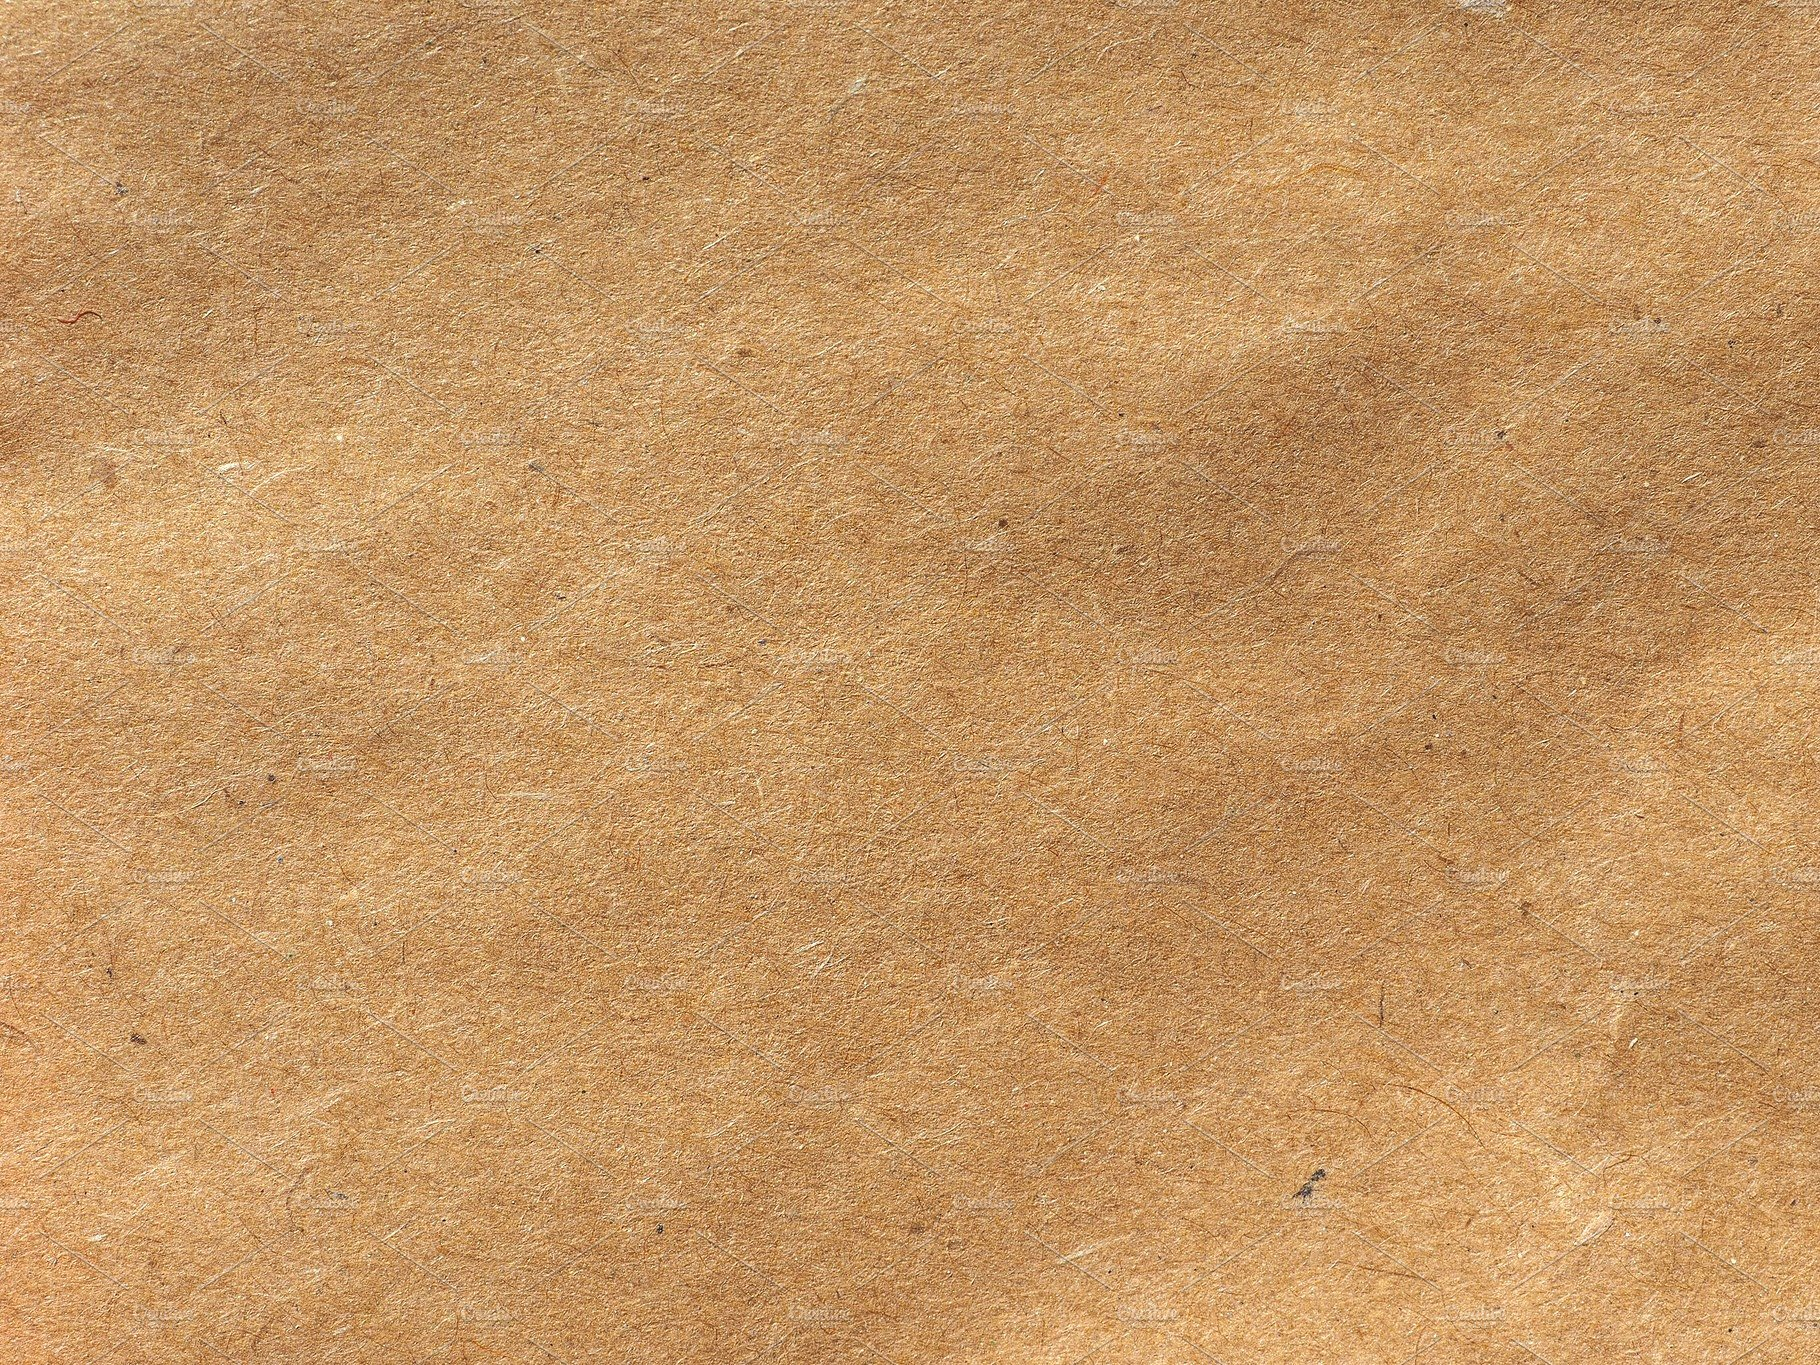 free photo brown paper texture subtle surface papers